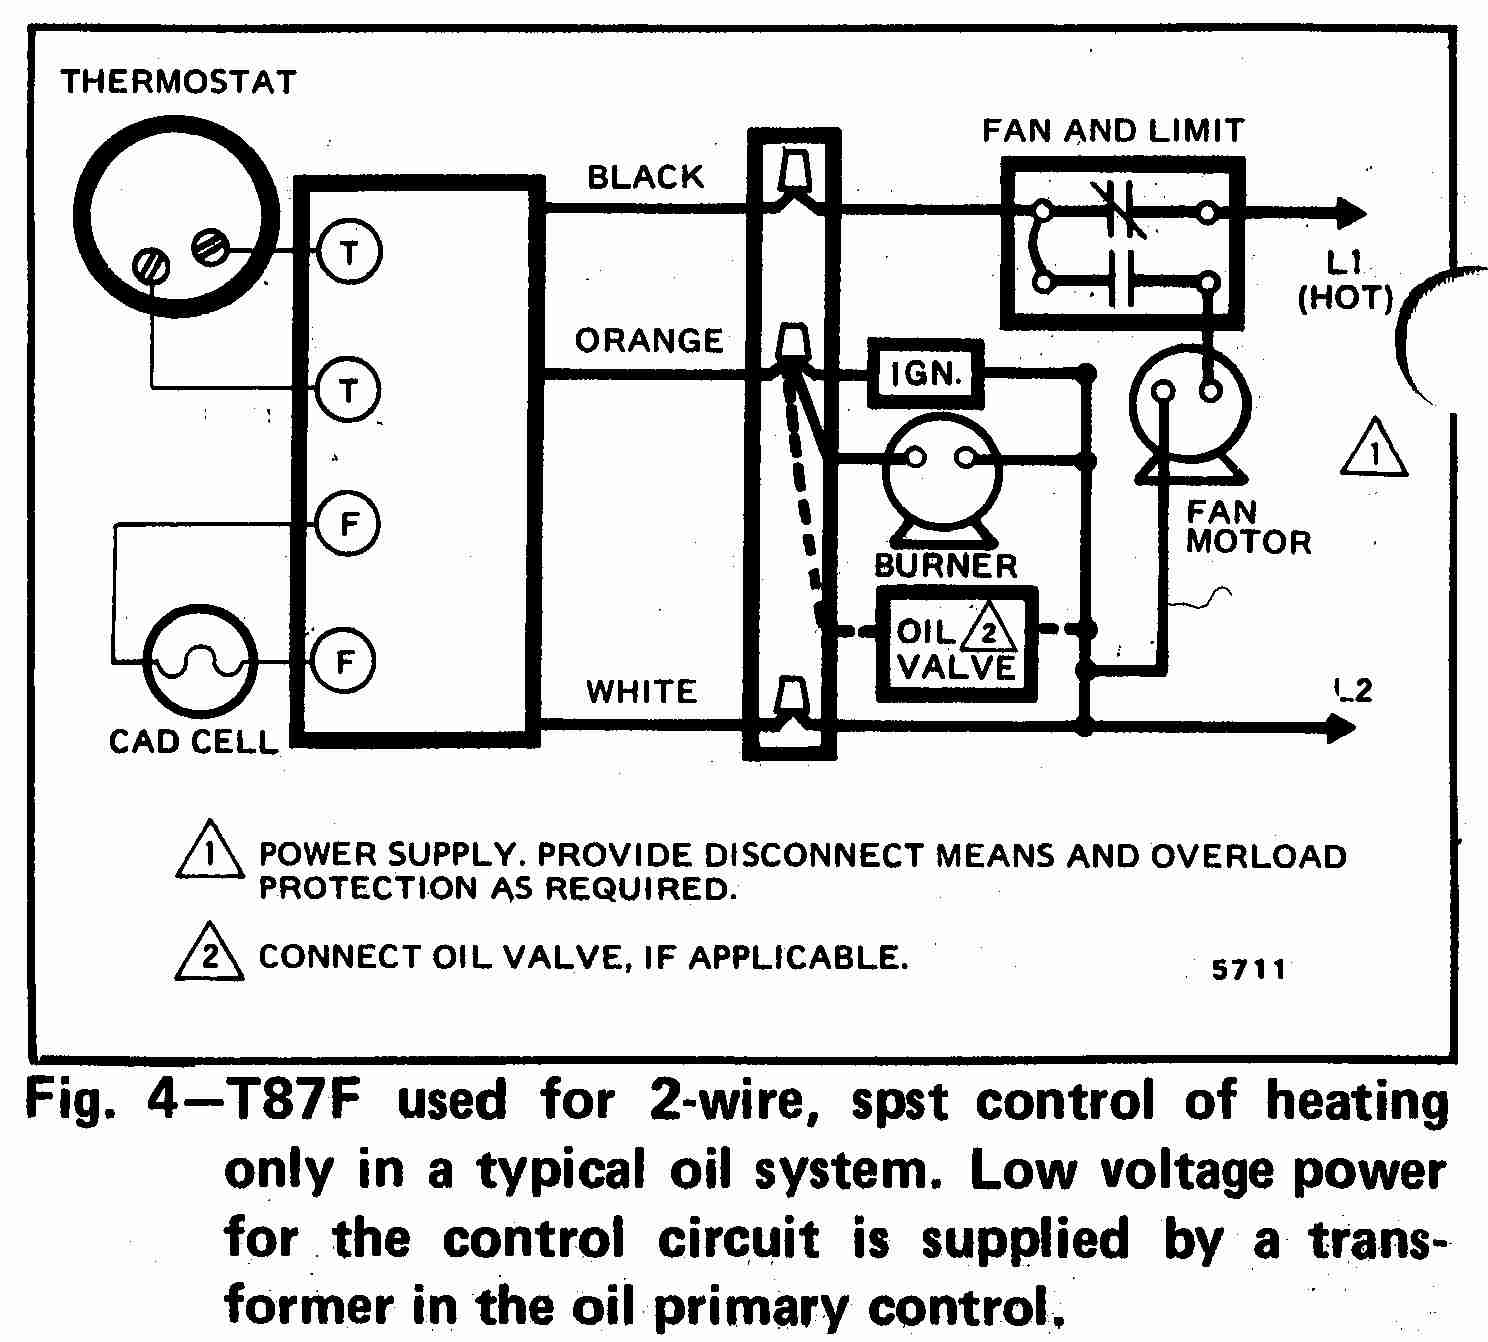 TT_T87F_0002_2W_DJF 100 [ wiring diagram new thermostat ] need help connecting honeywell rth3100c wiring diagram at gsmportal.co